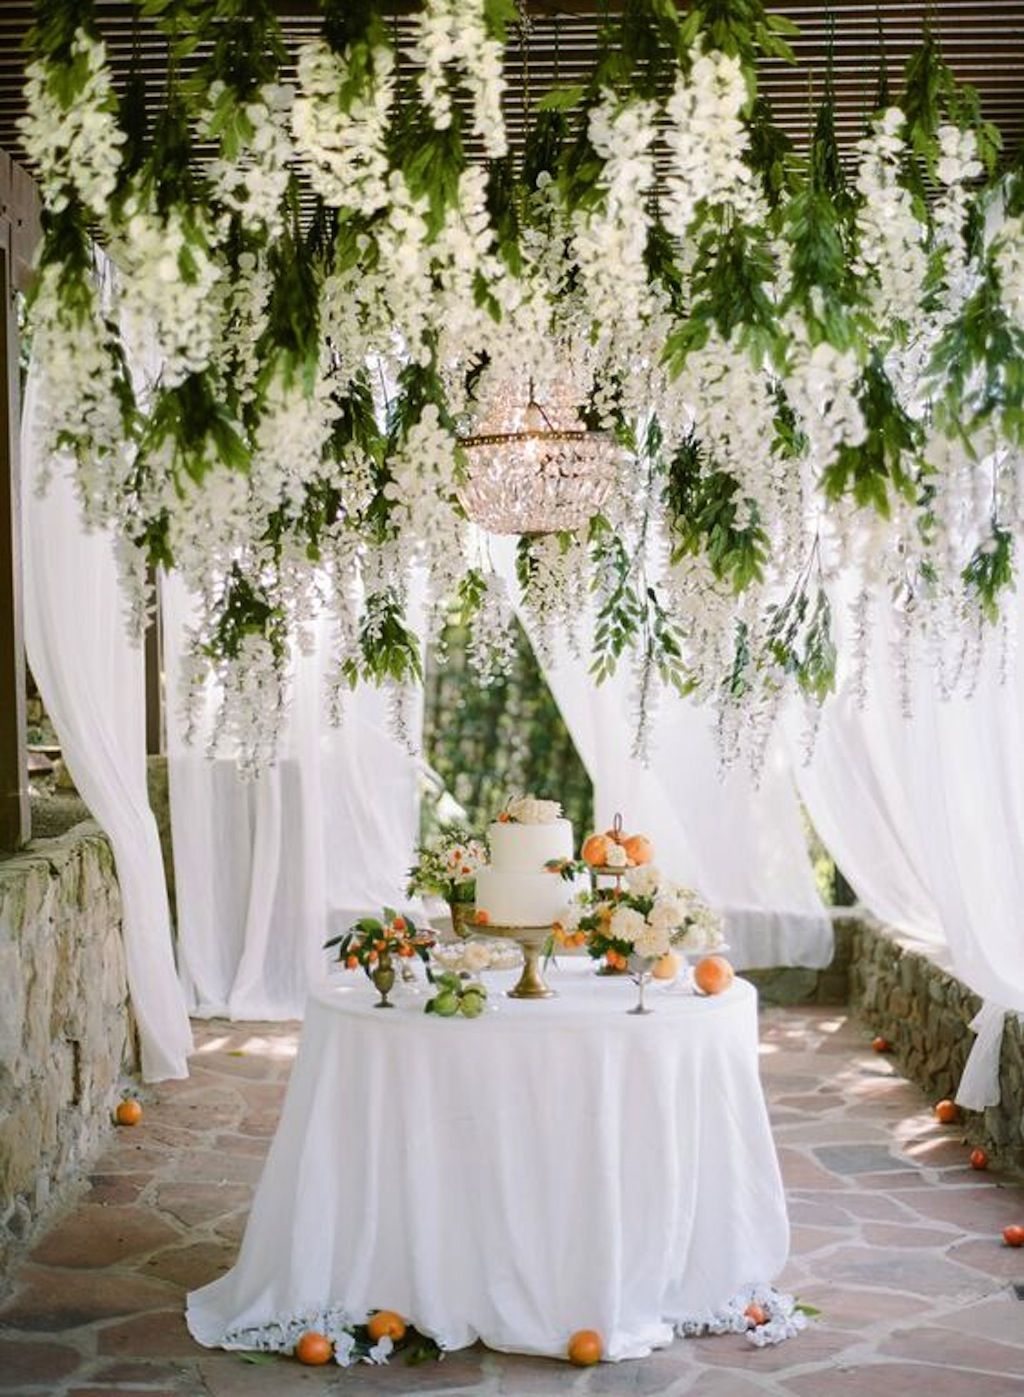 Chandelier glistens amidst a whimsical wisteria creation by Celadon ...